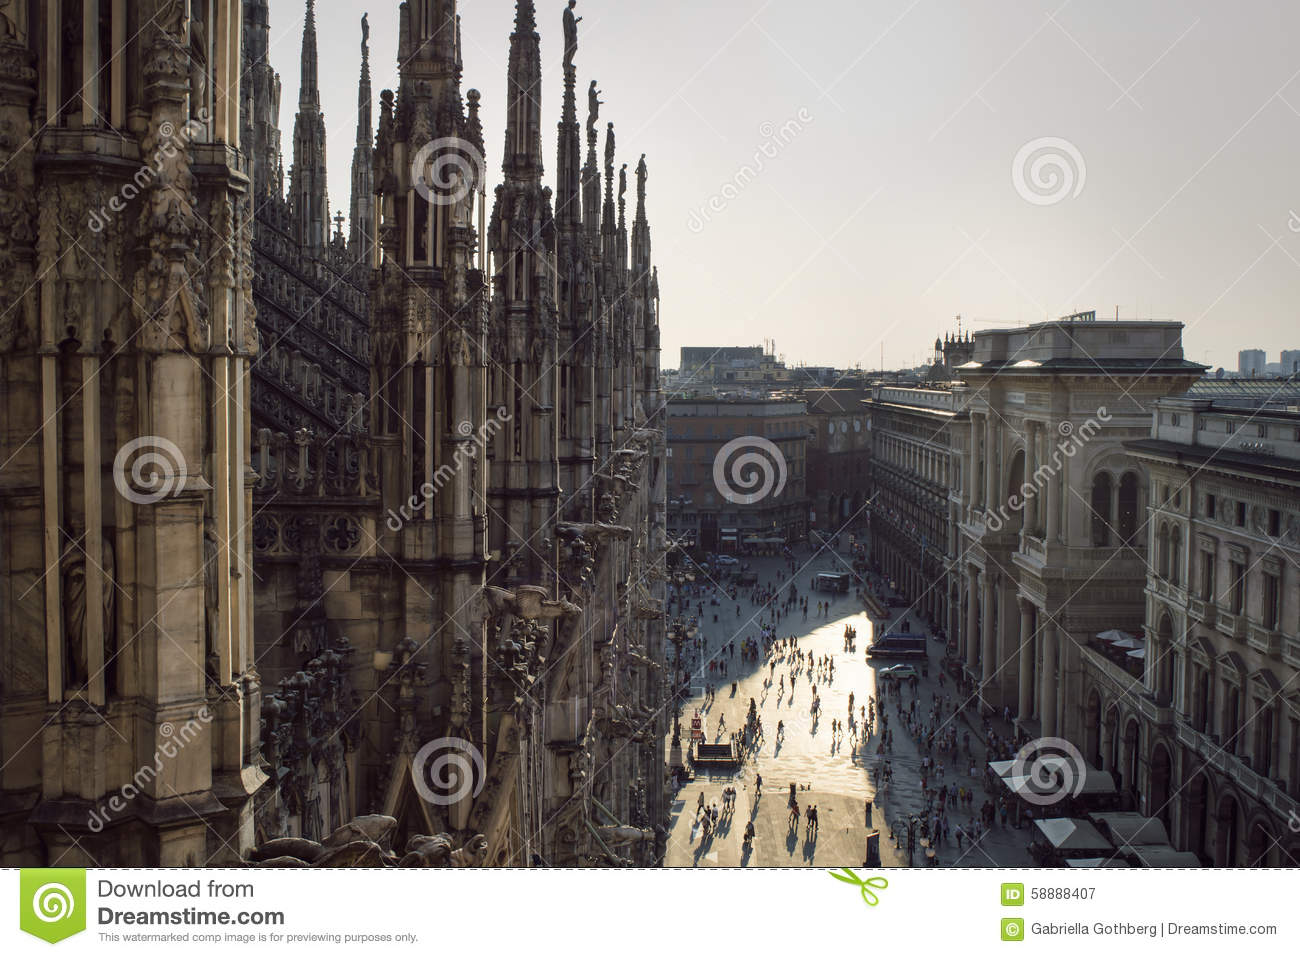 View from the gothic cathedral Duomo di Milano, Italy.